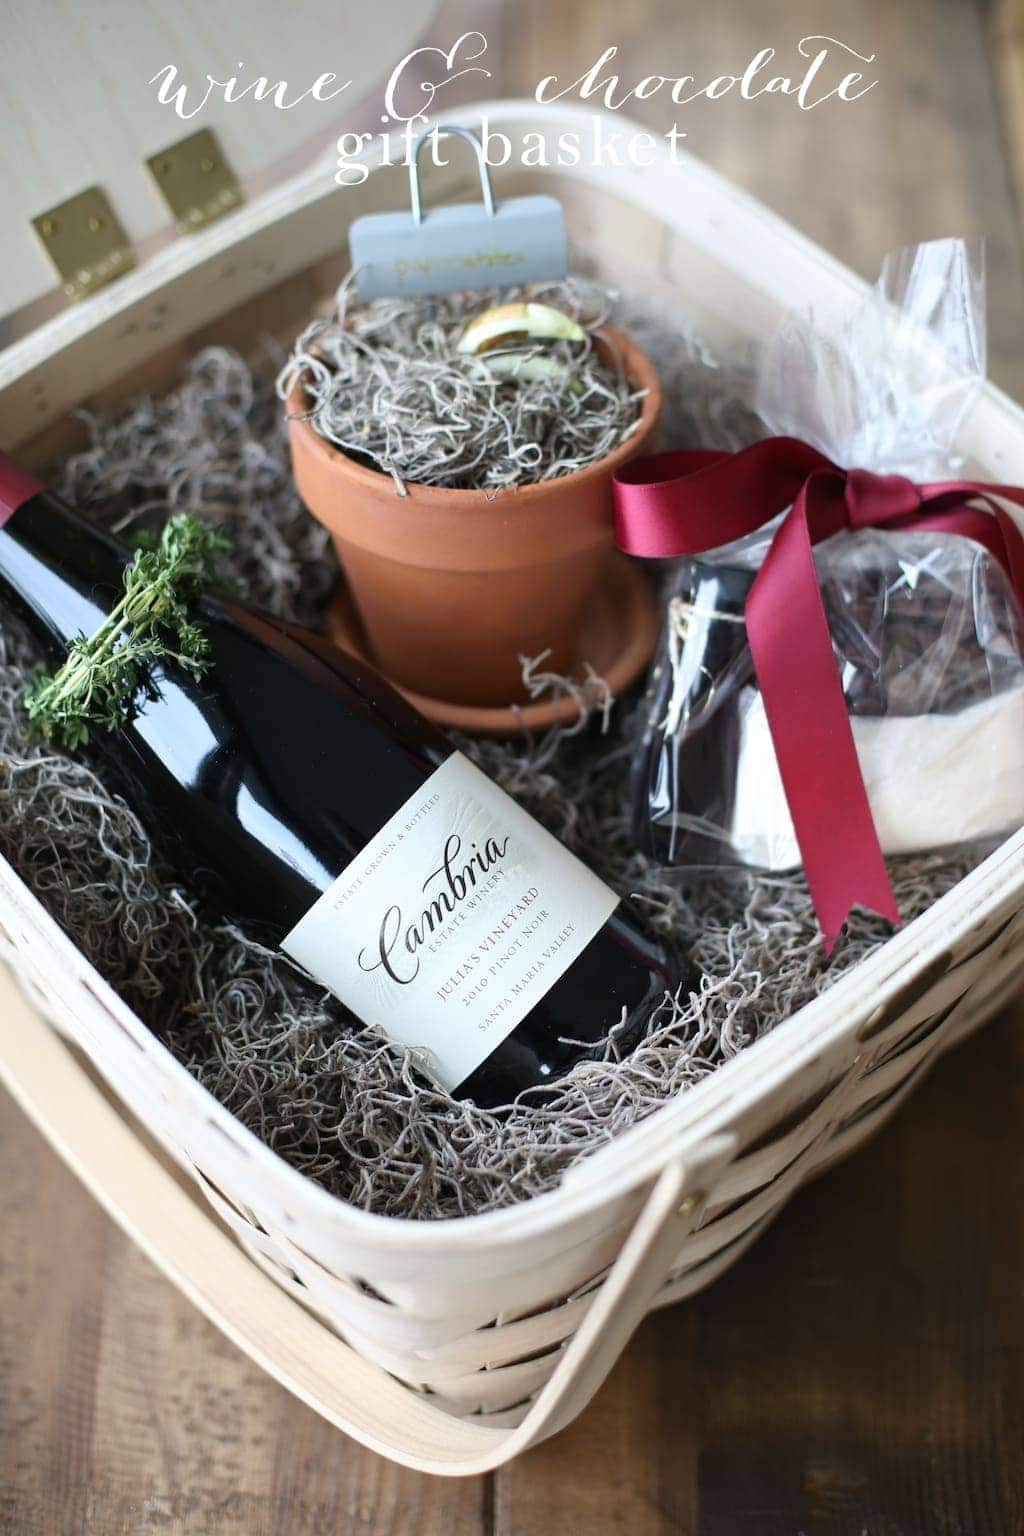 Wine and Chocolate Gift basket with a molten lava cake kit and recipe!